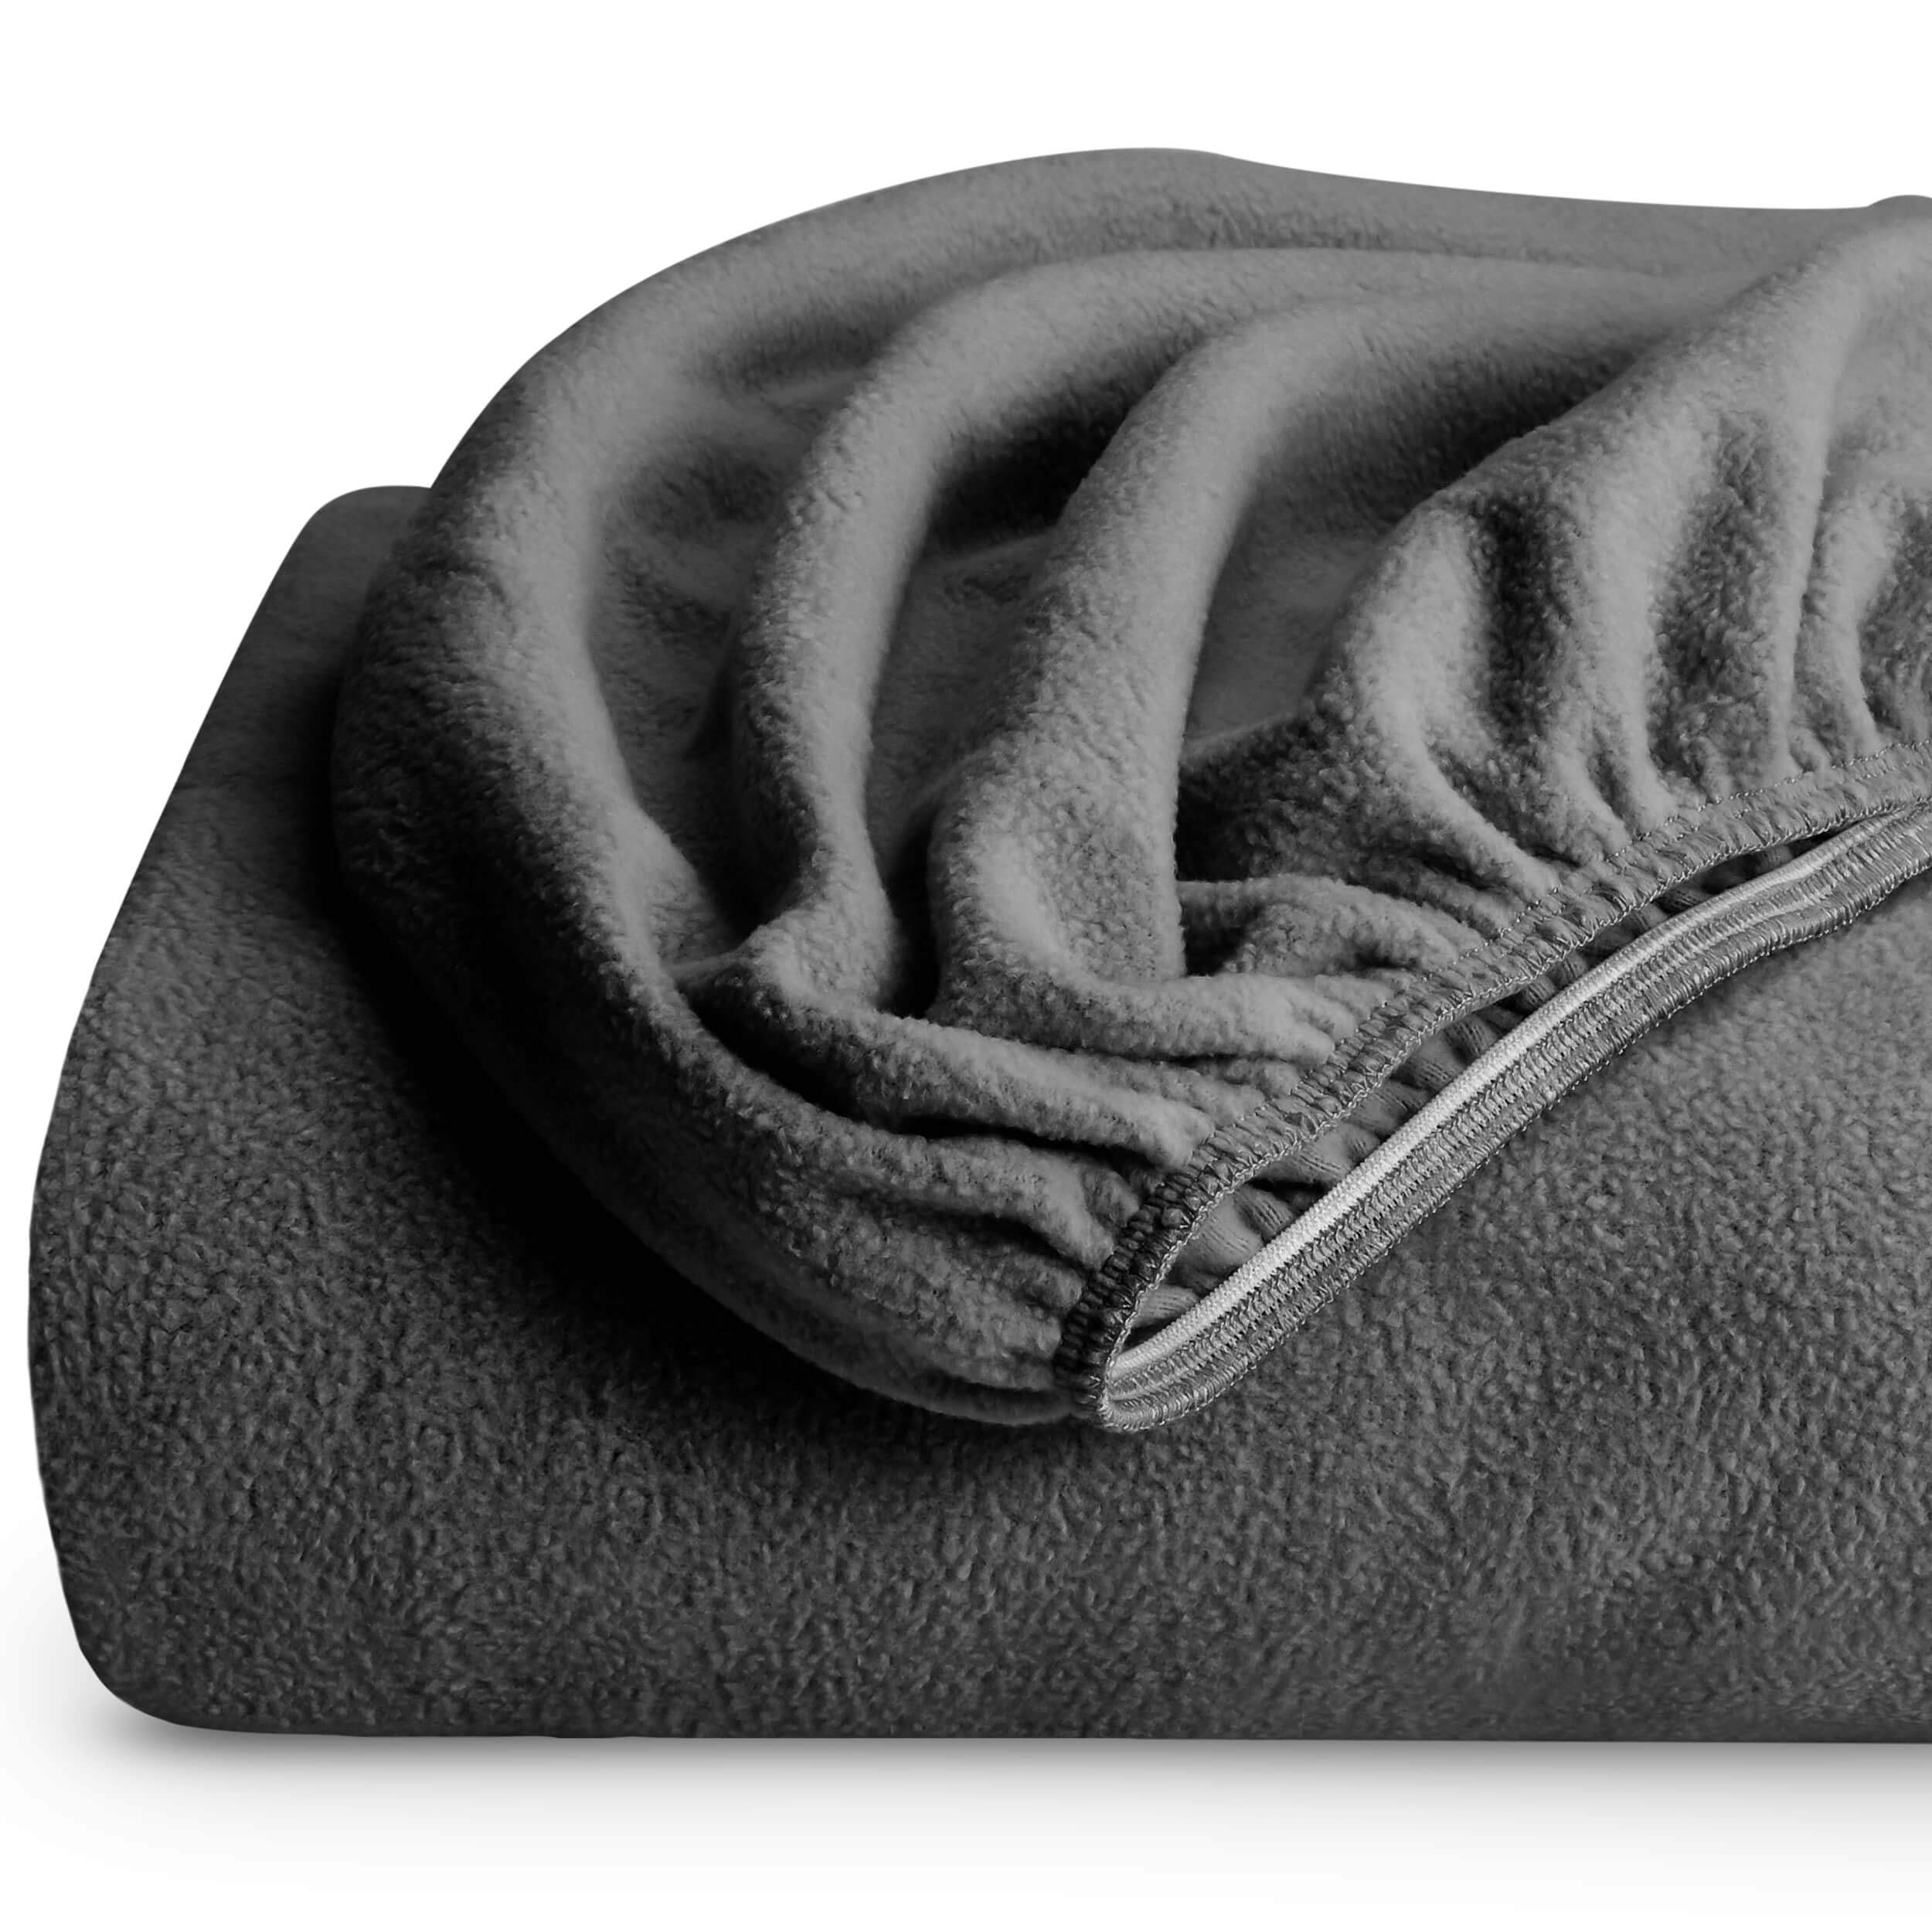 Bare Home Super Soft Fleece Fitted Sheet - Full Size - Extra Plush Polar Fleece, Pill Resistant - Deep Pocket - All Season Cozy Warmth, Breathable & Hypoallergenic (Full, Grey)